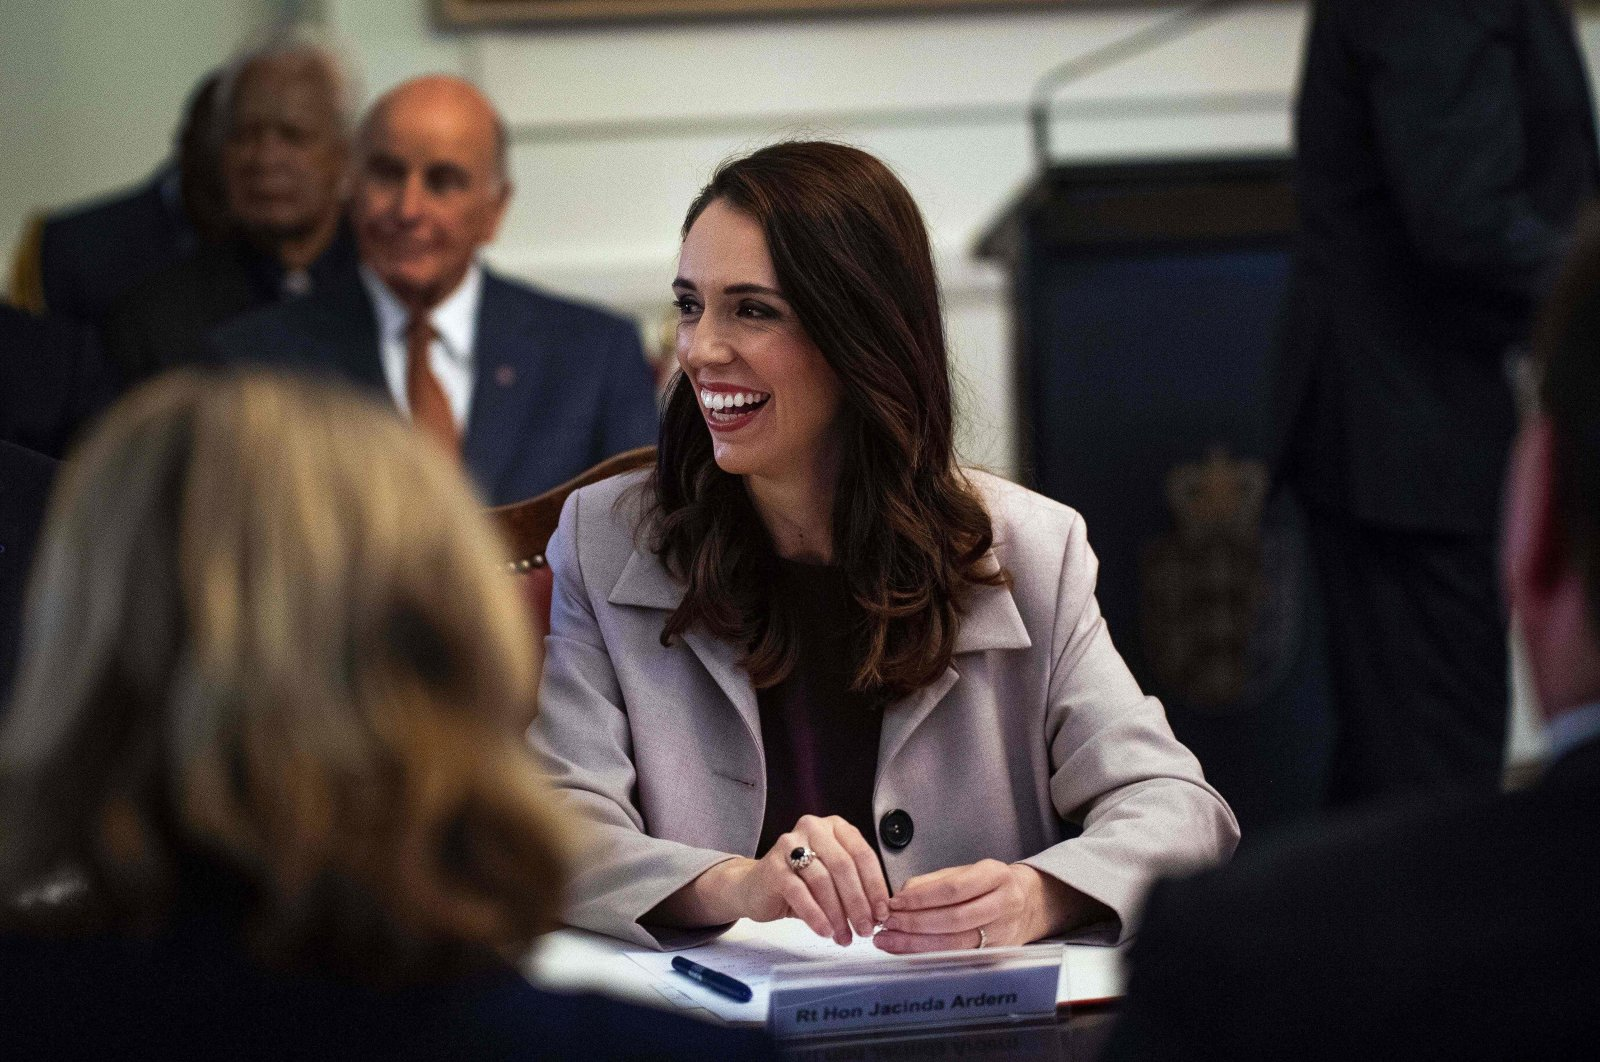 New Zealand's Prime Minister Jacinda Ardern smiles during a Cabinet meeting at the Parliament House in Wellington, Nov. 6, 2020. (AFP Photo)